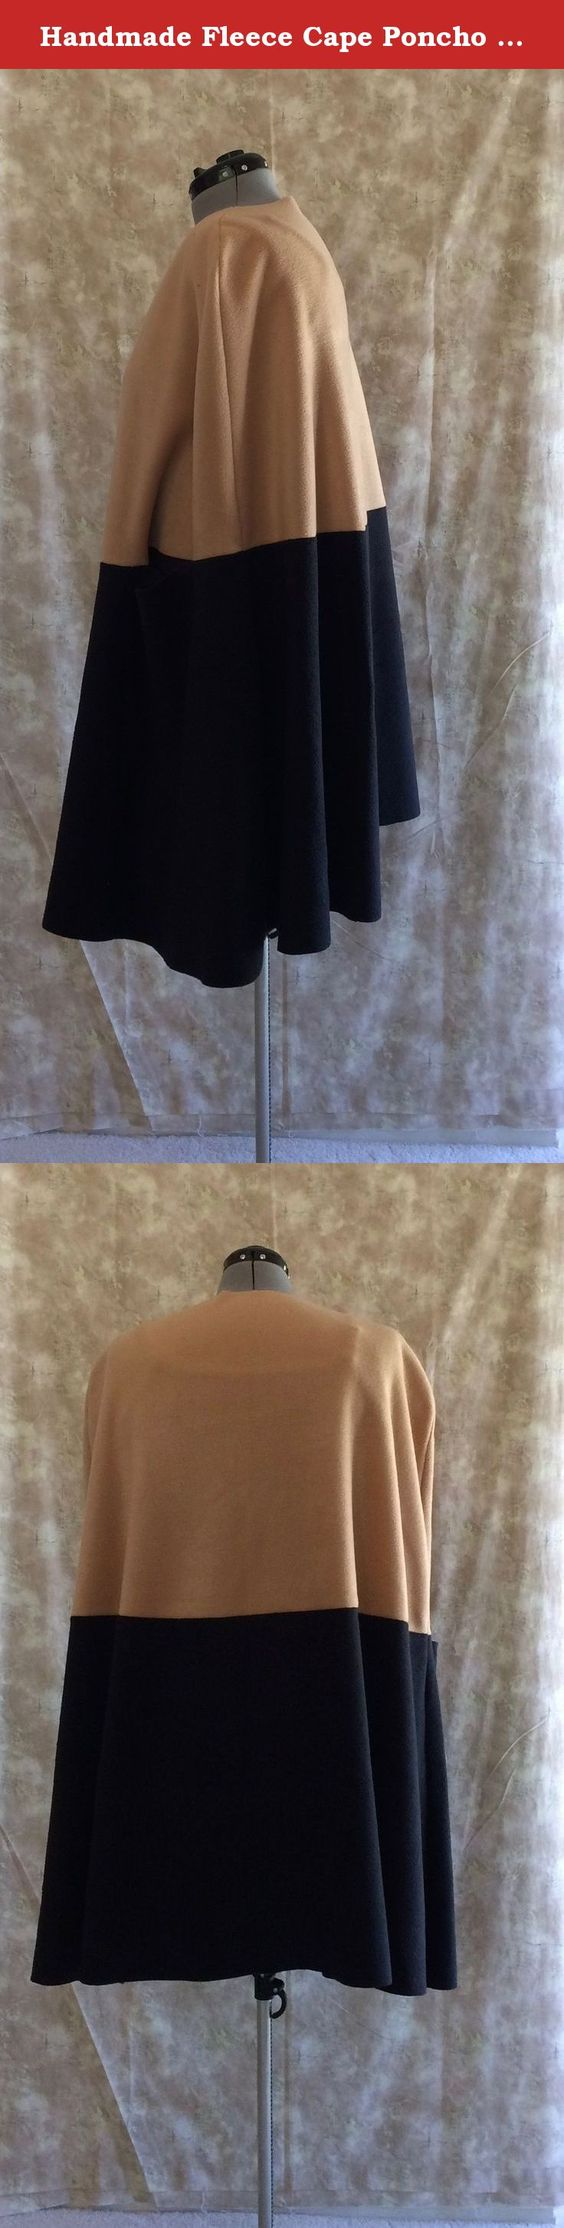 """Handmade Fleece Cape Poncho Wrap XL Camel/Black Topstitching Hand Slits. Stay warm and cozy in this women's polar fleece cape poncho wrap. Color: Camel/Black. Size: XL (22-24). Available in Large as well. Measurements for XL: Bust: 44-46"""" Waist: 37_39"""" Hips: 46-48"""" Decorative Topstitching around edges. Topstitching thread color either Black, Camel, or Black on Black/Camel on Camel. Arm slits horizontal in front seams. Silver magnetic button neck closure. (Not Shown in picture) Measures:..."""